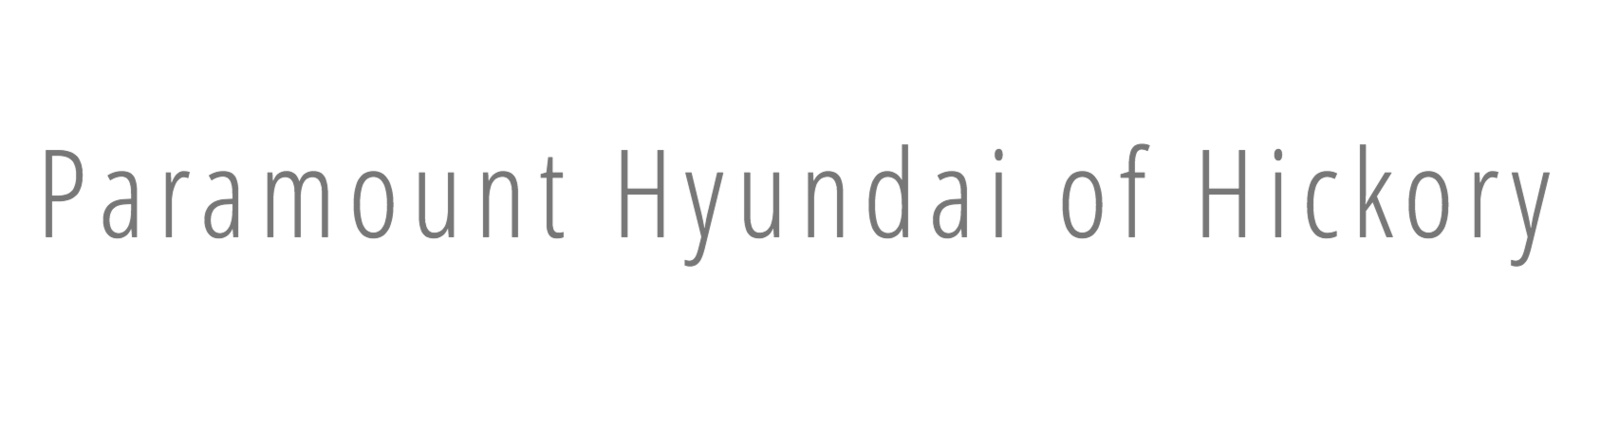 Paramount Hyundai Of Hickory   Hickory, NC: Read Consumer Reviews, Browse  Used And New Cars For Sale